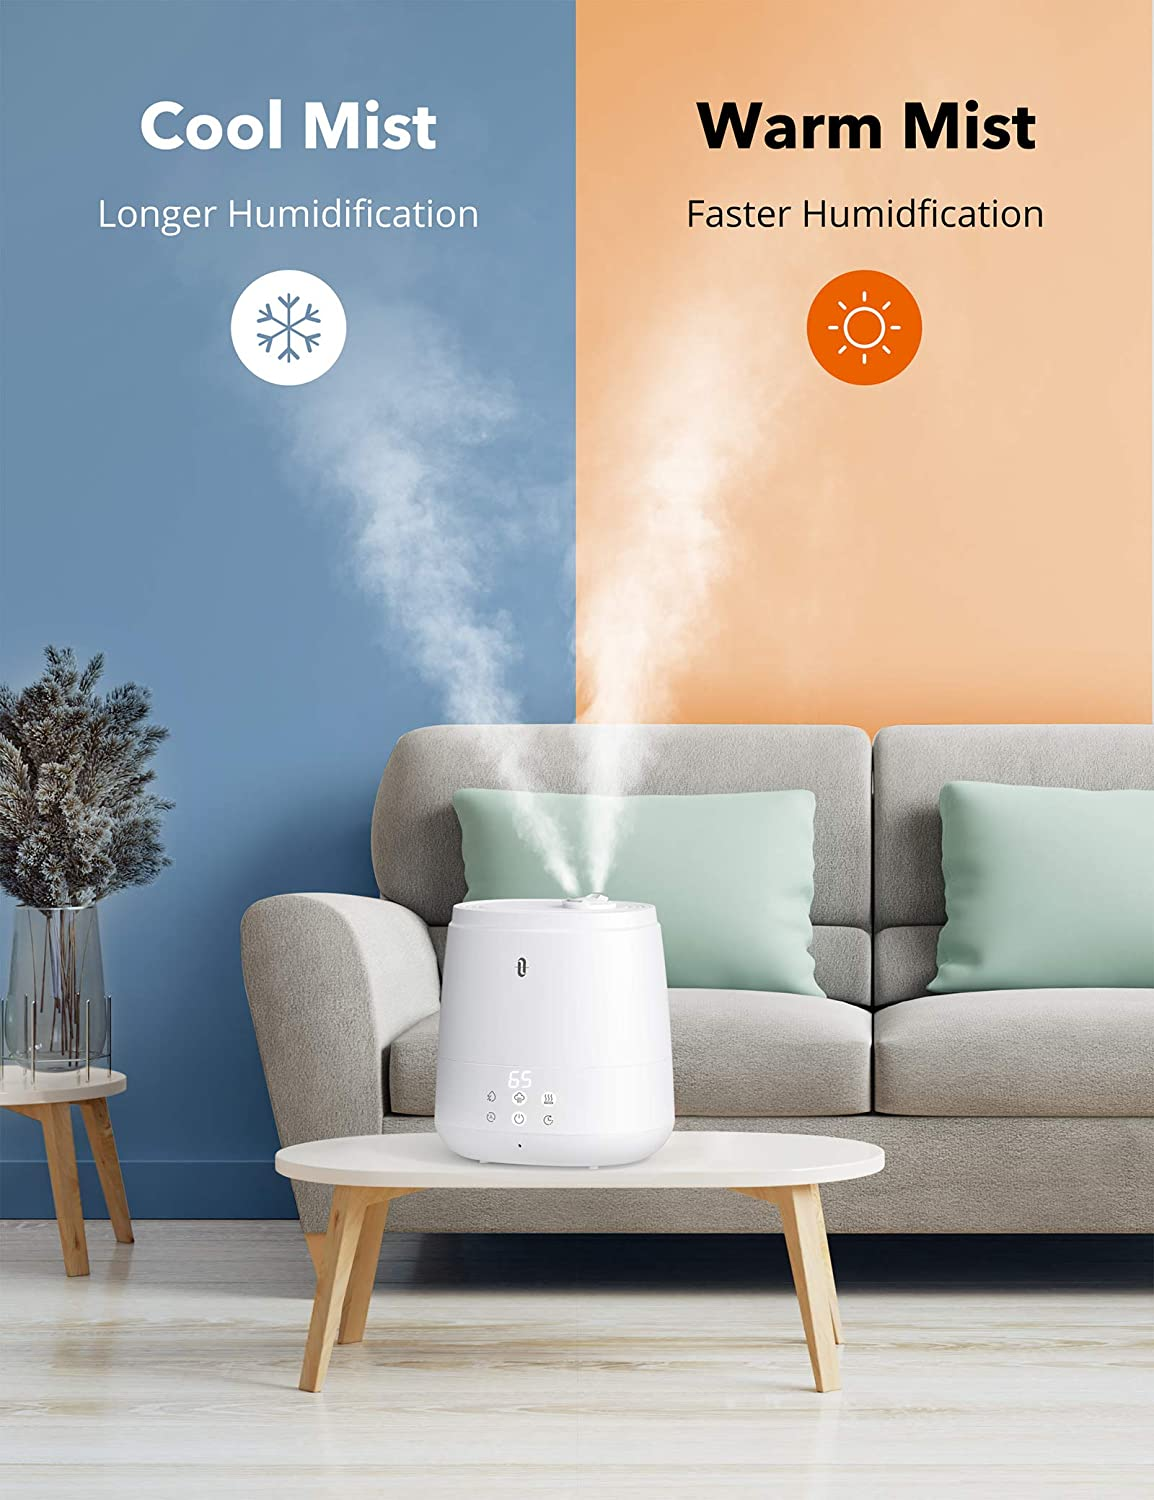 5 Best Type of Humidifier for Hard Water | How To